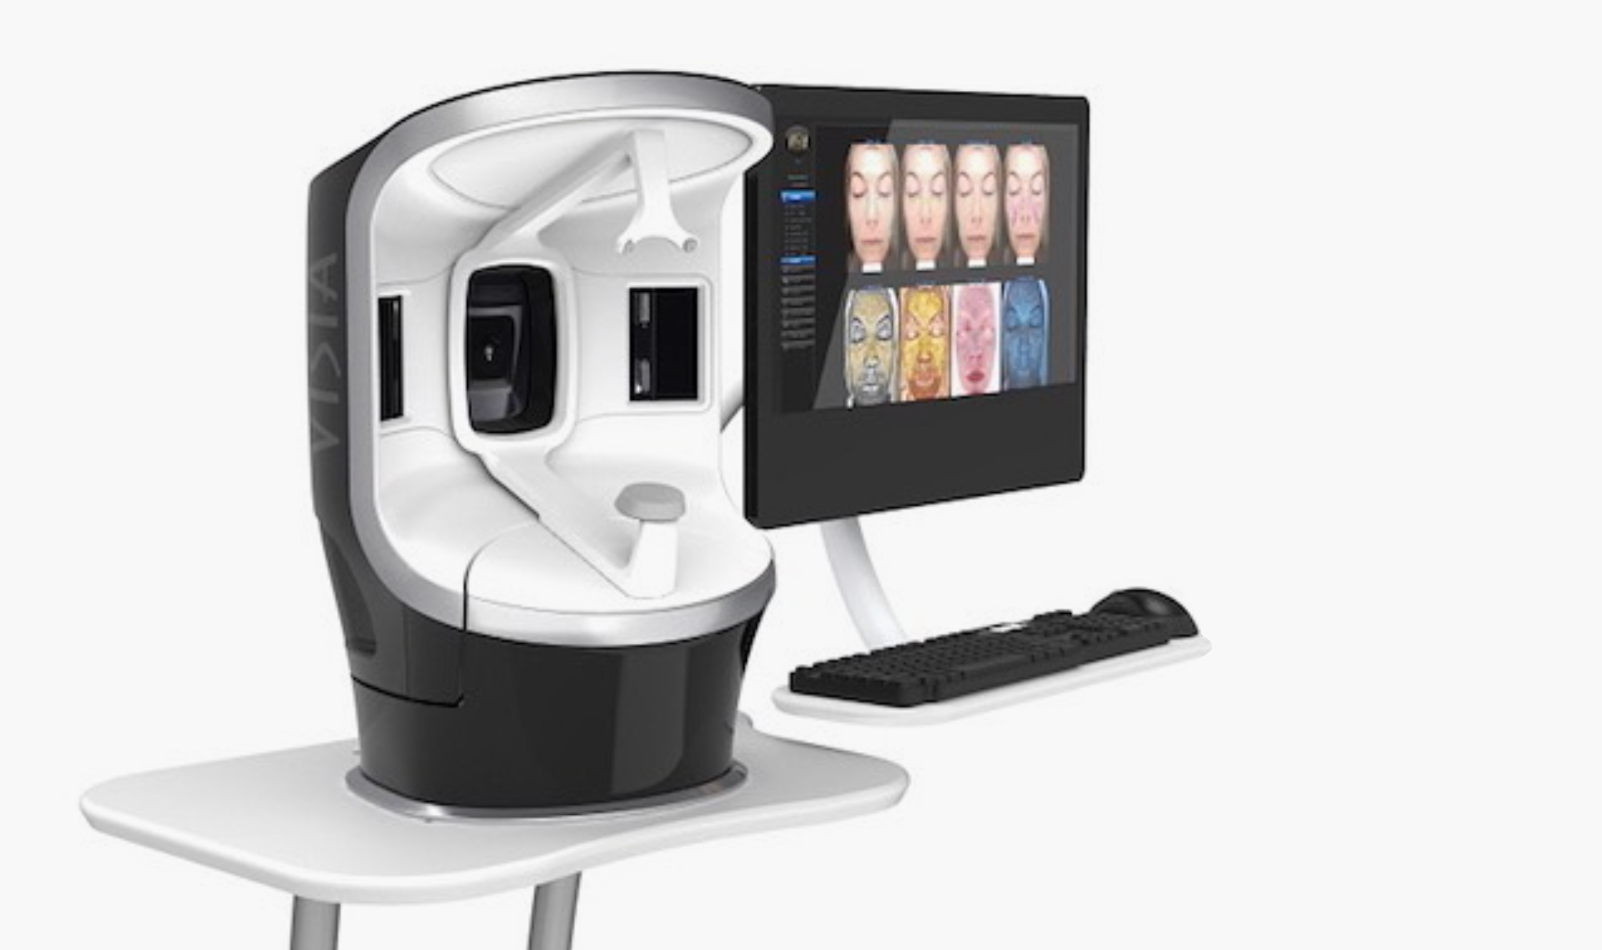 Visia Complexion Analysis Booth